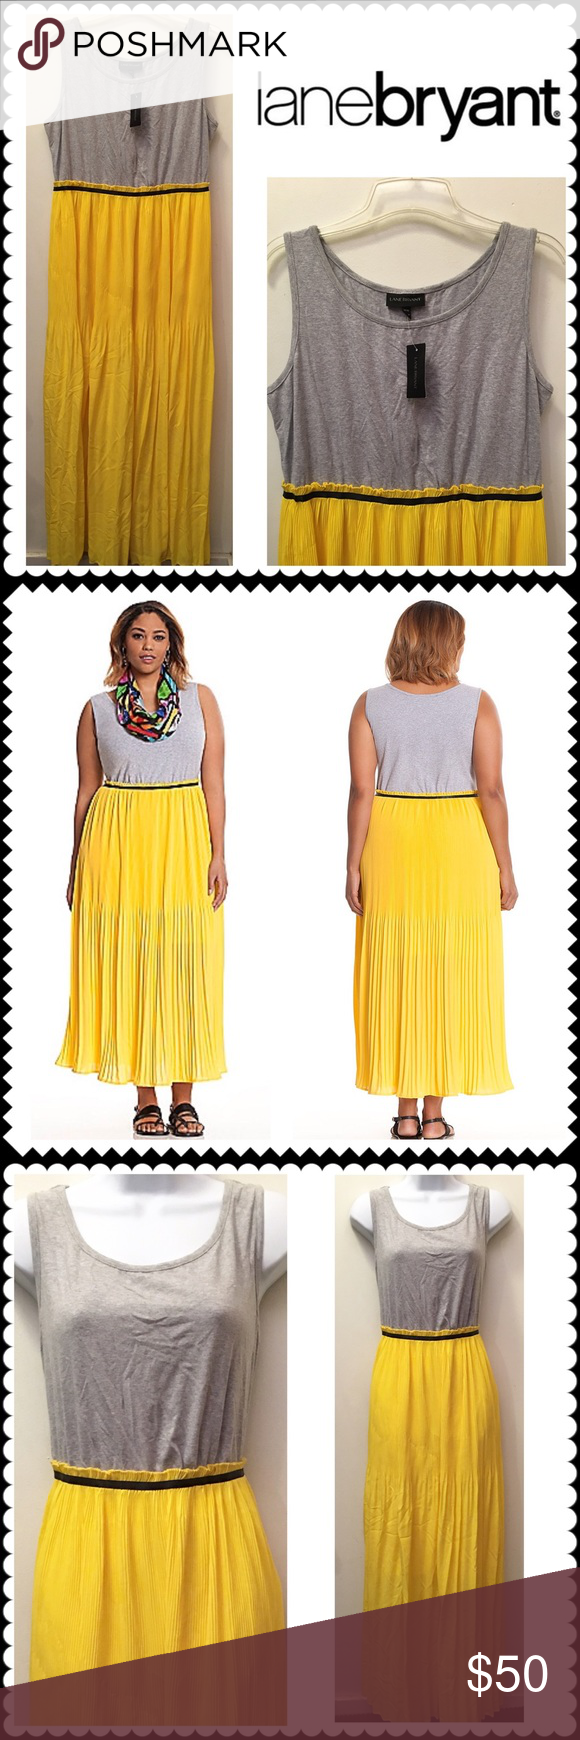 bd422f94707 Spotted while shopping on Poshmark  NWT Yellow Gray pleated maxi dress Lane  Bryant 16!  poshmark  fashion  shopping  style  Lane Bryant  Dresses    Skirts